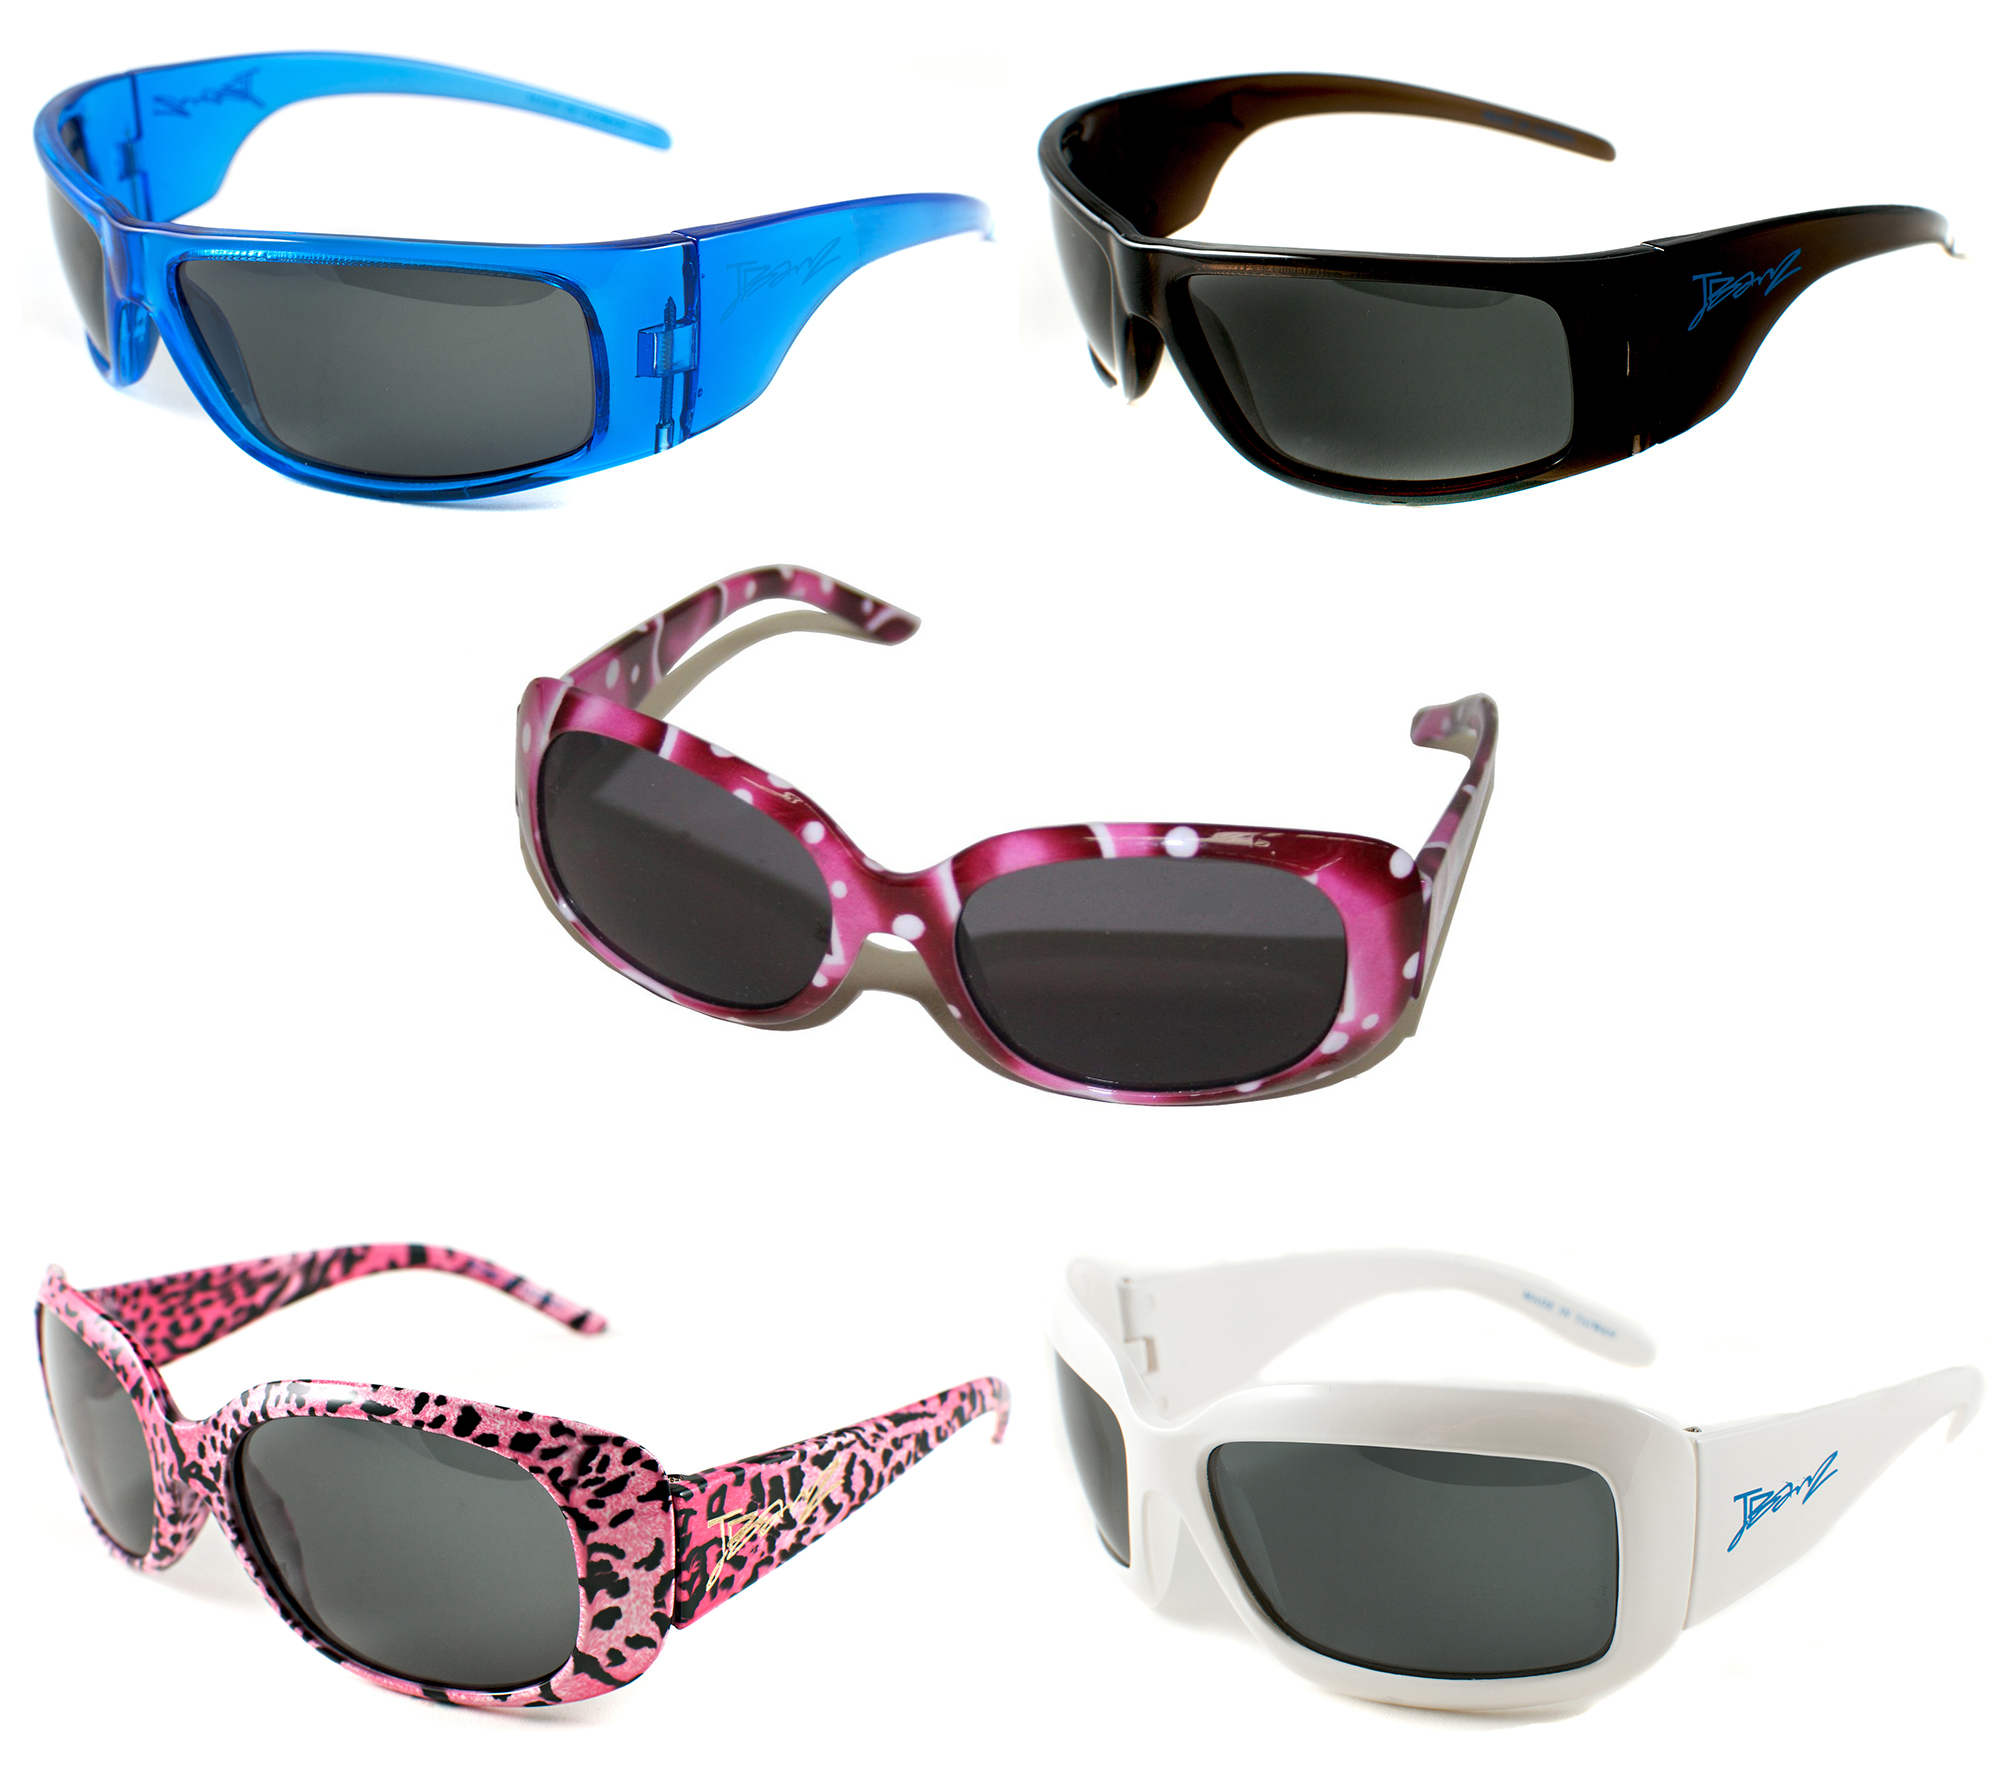 baby sunglasses ezfs  Baby Banz J-BANZ KIDS SUNGLASSES & CASE Toddler/Child Sun Protection  Holiday BN